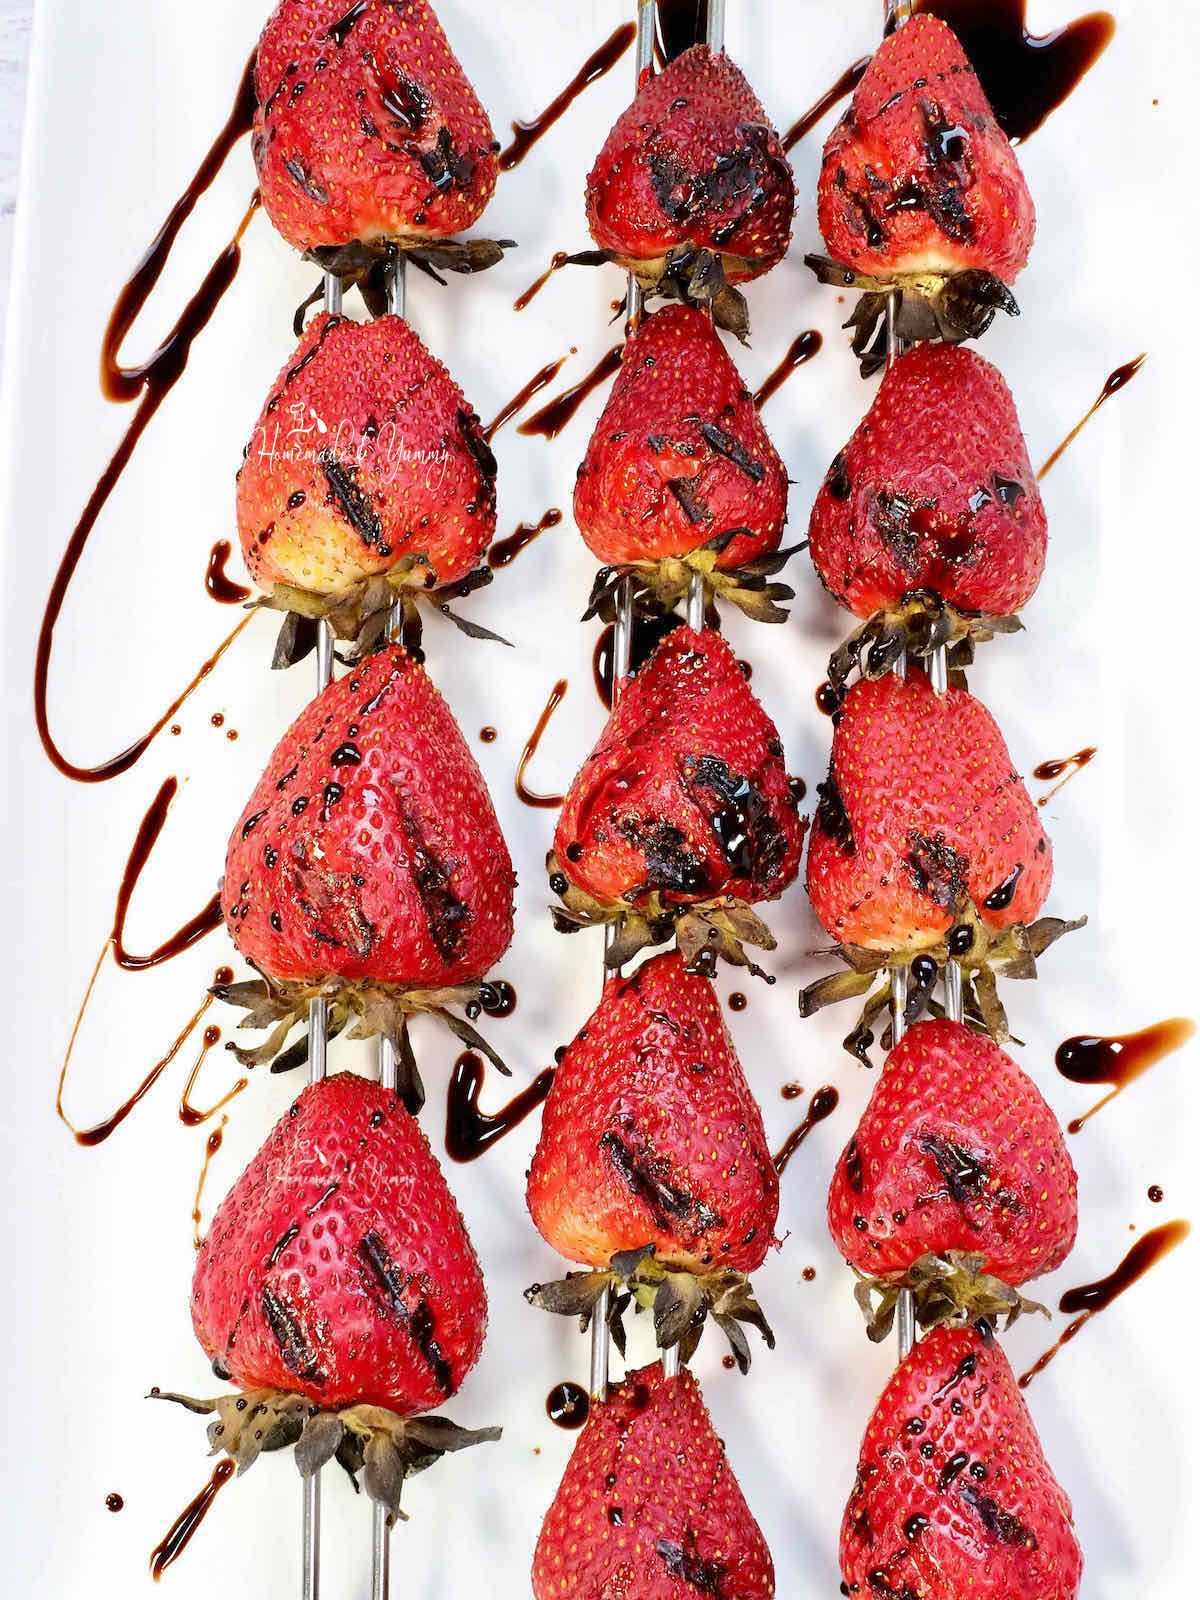 Grilled Strawberry Kabobs on a white plate drizzled with balsamic.